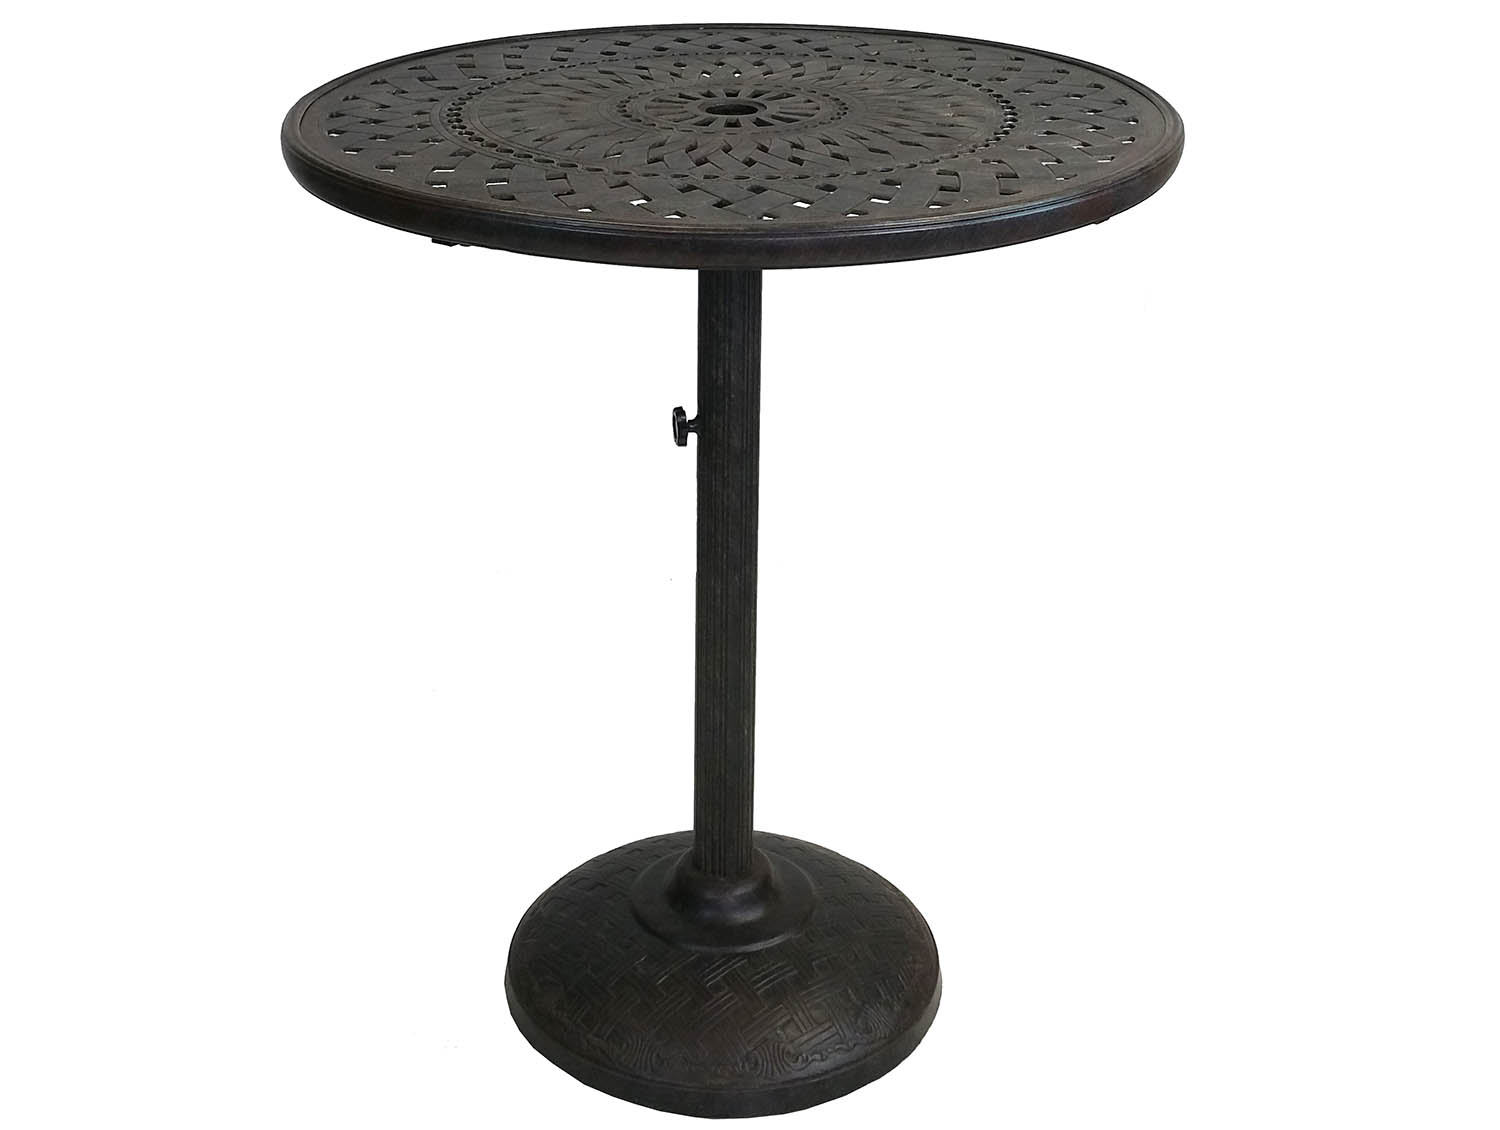 Belmont 36 Inch Bar Table W/ Built In Umbrella Stand